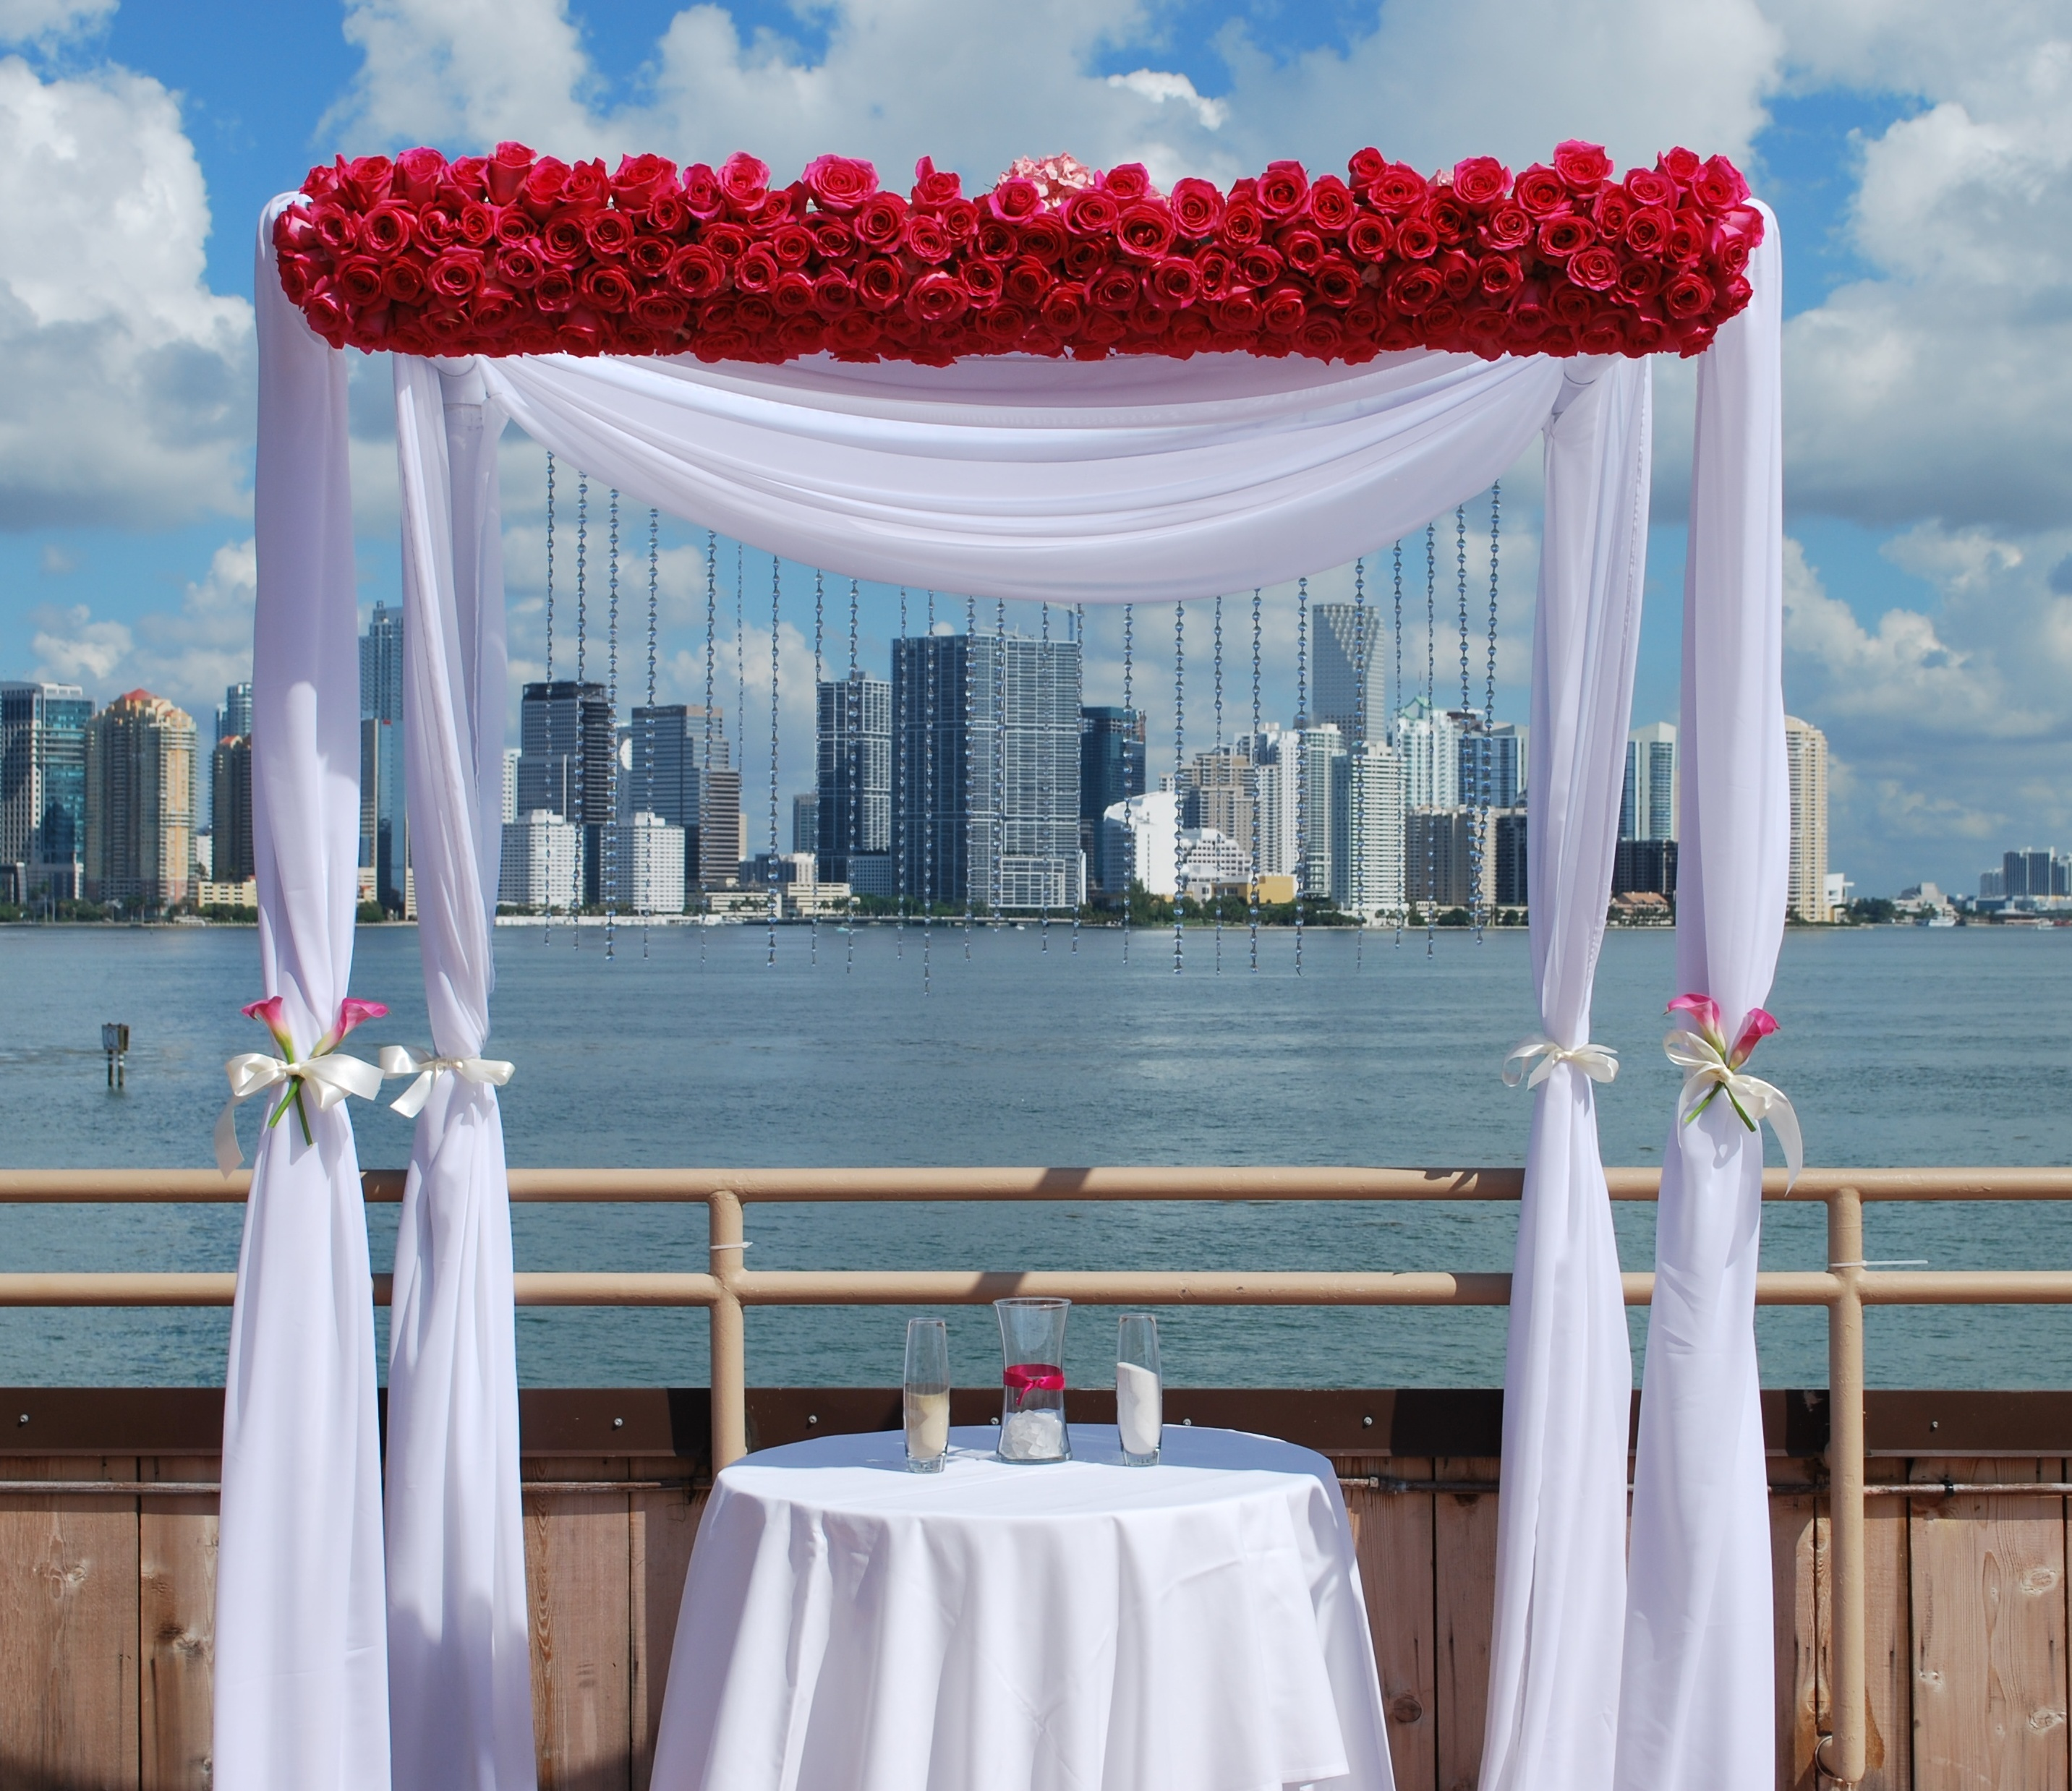 Ceremony, Reception, Flowers & Decor, pink, Roses, Rose, Chuppah, Huppa, Chiffon, Chuppa, Flowers by vivian colls, Hotpink